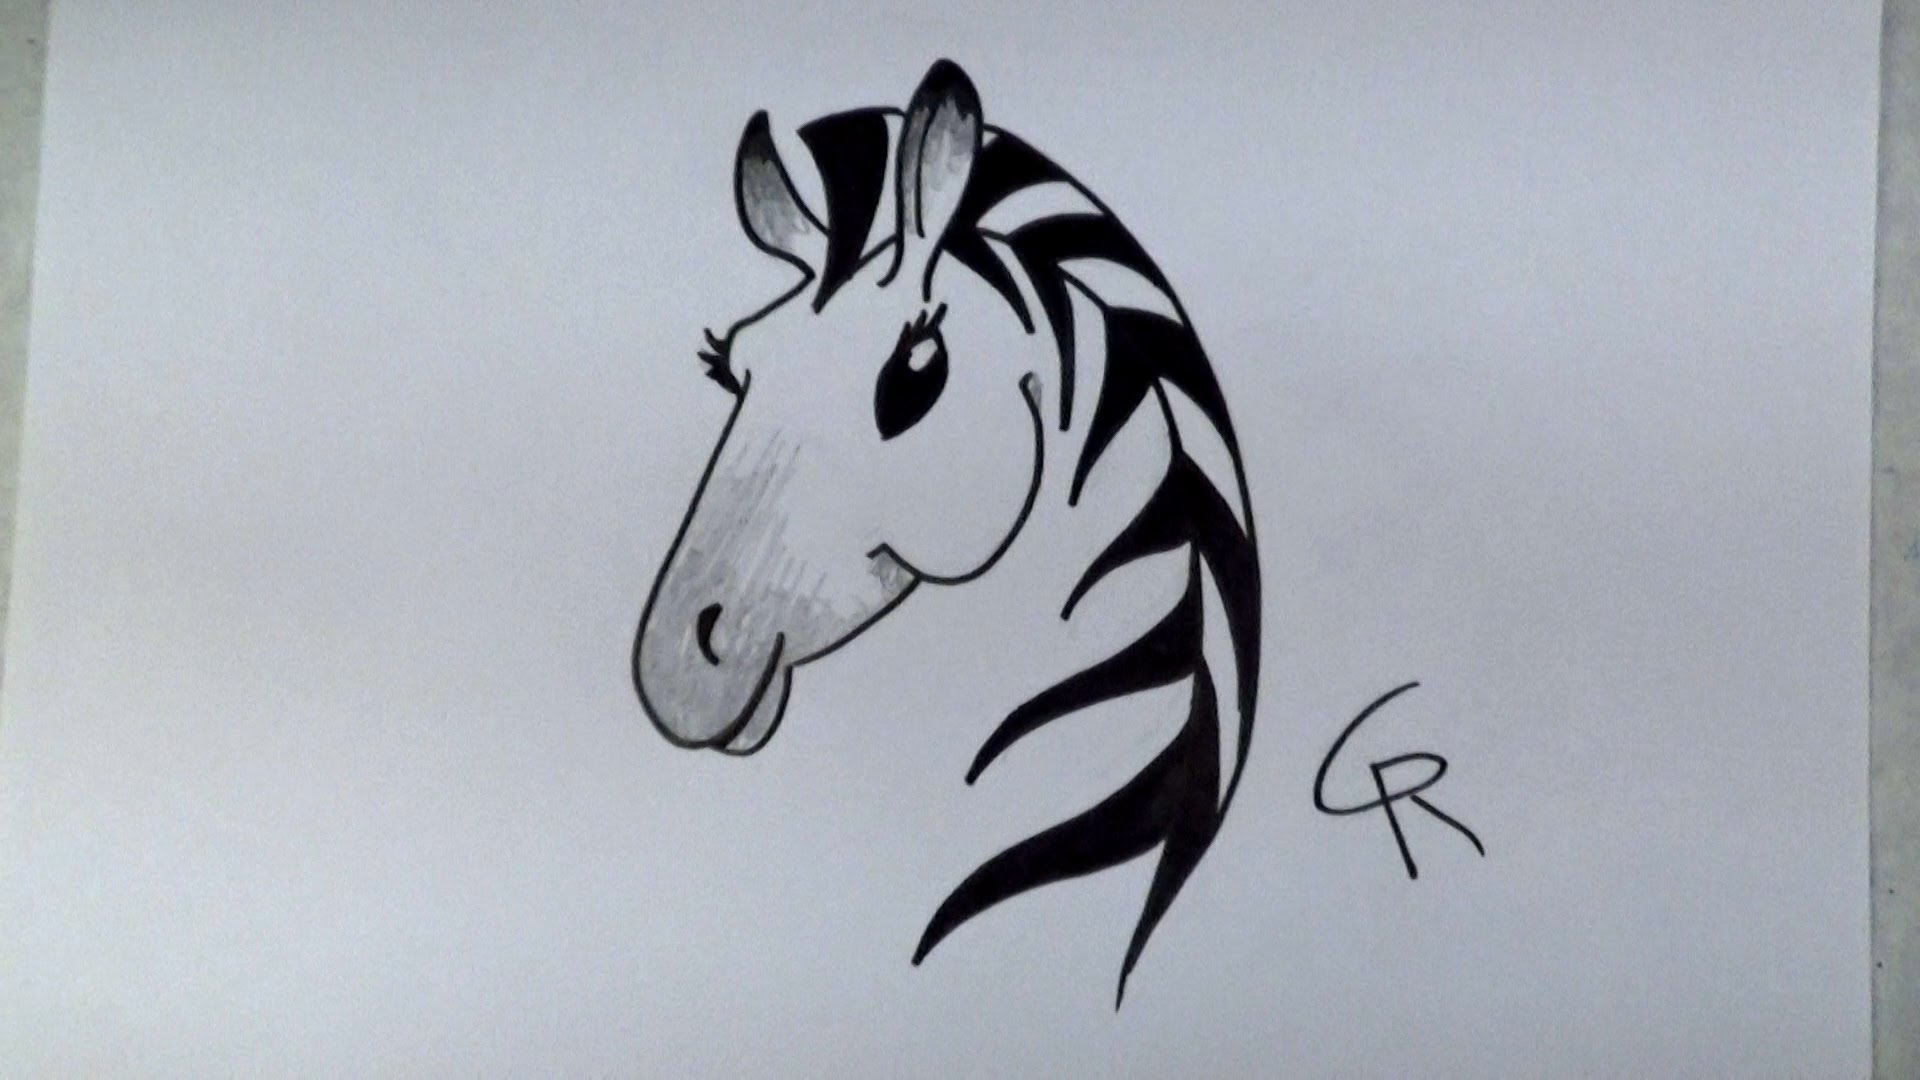 Coloring Pages For Adults That You Can Print : Cute zebra drawing at getdrawings free for personal use cute